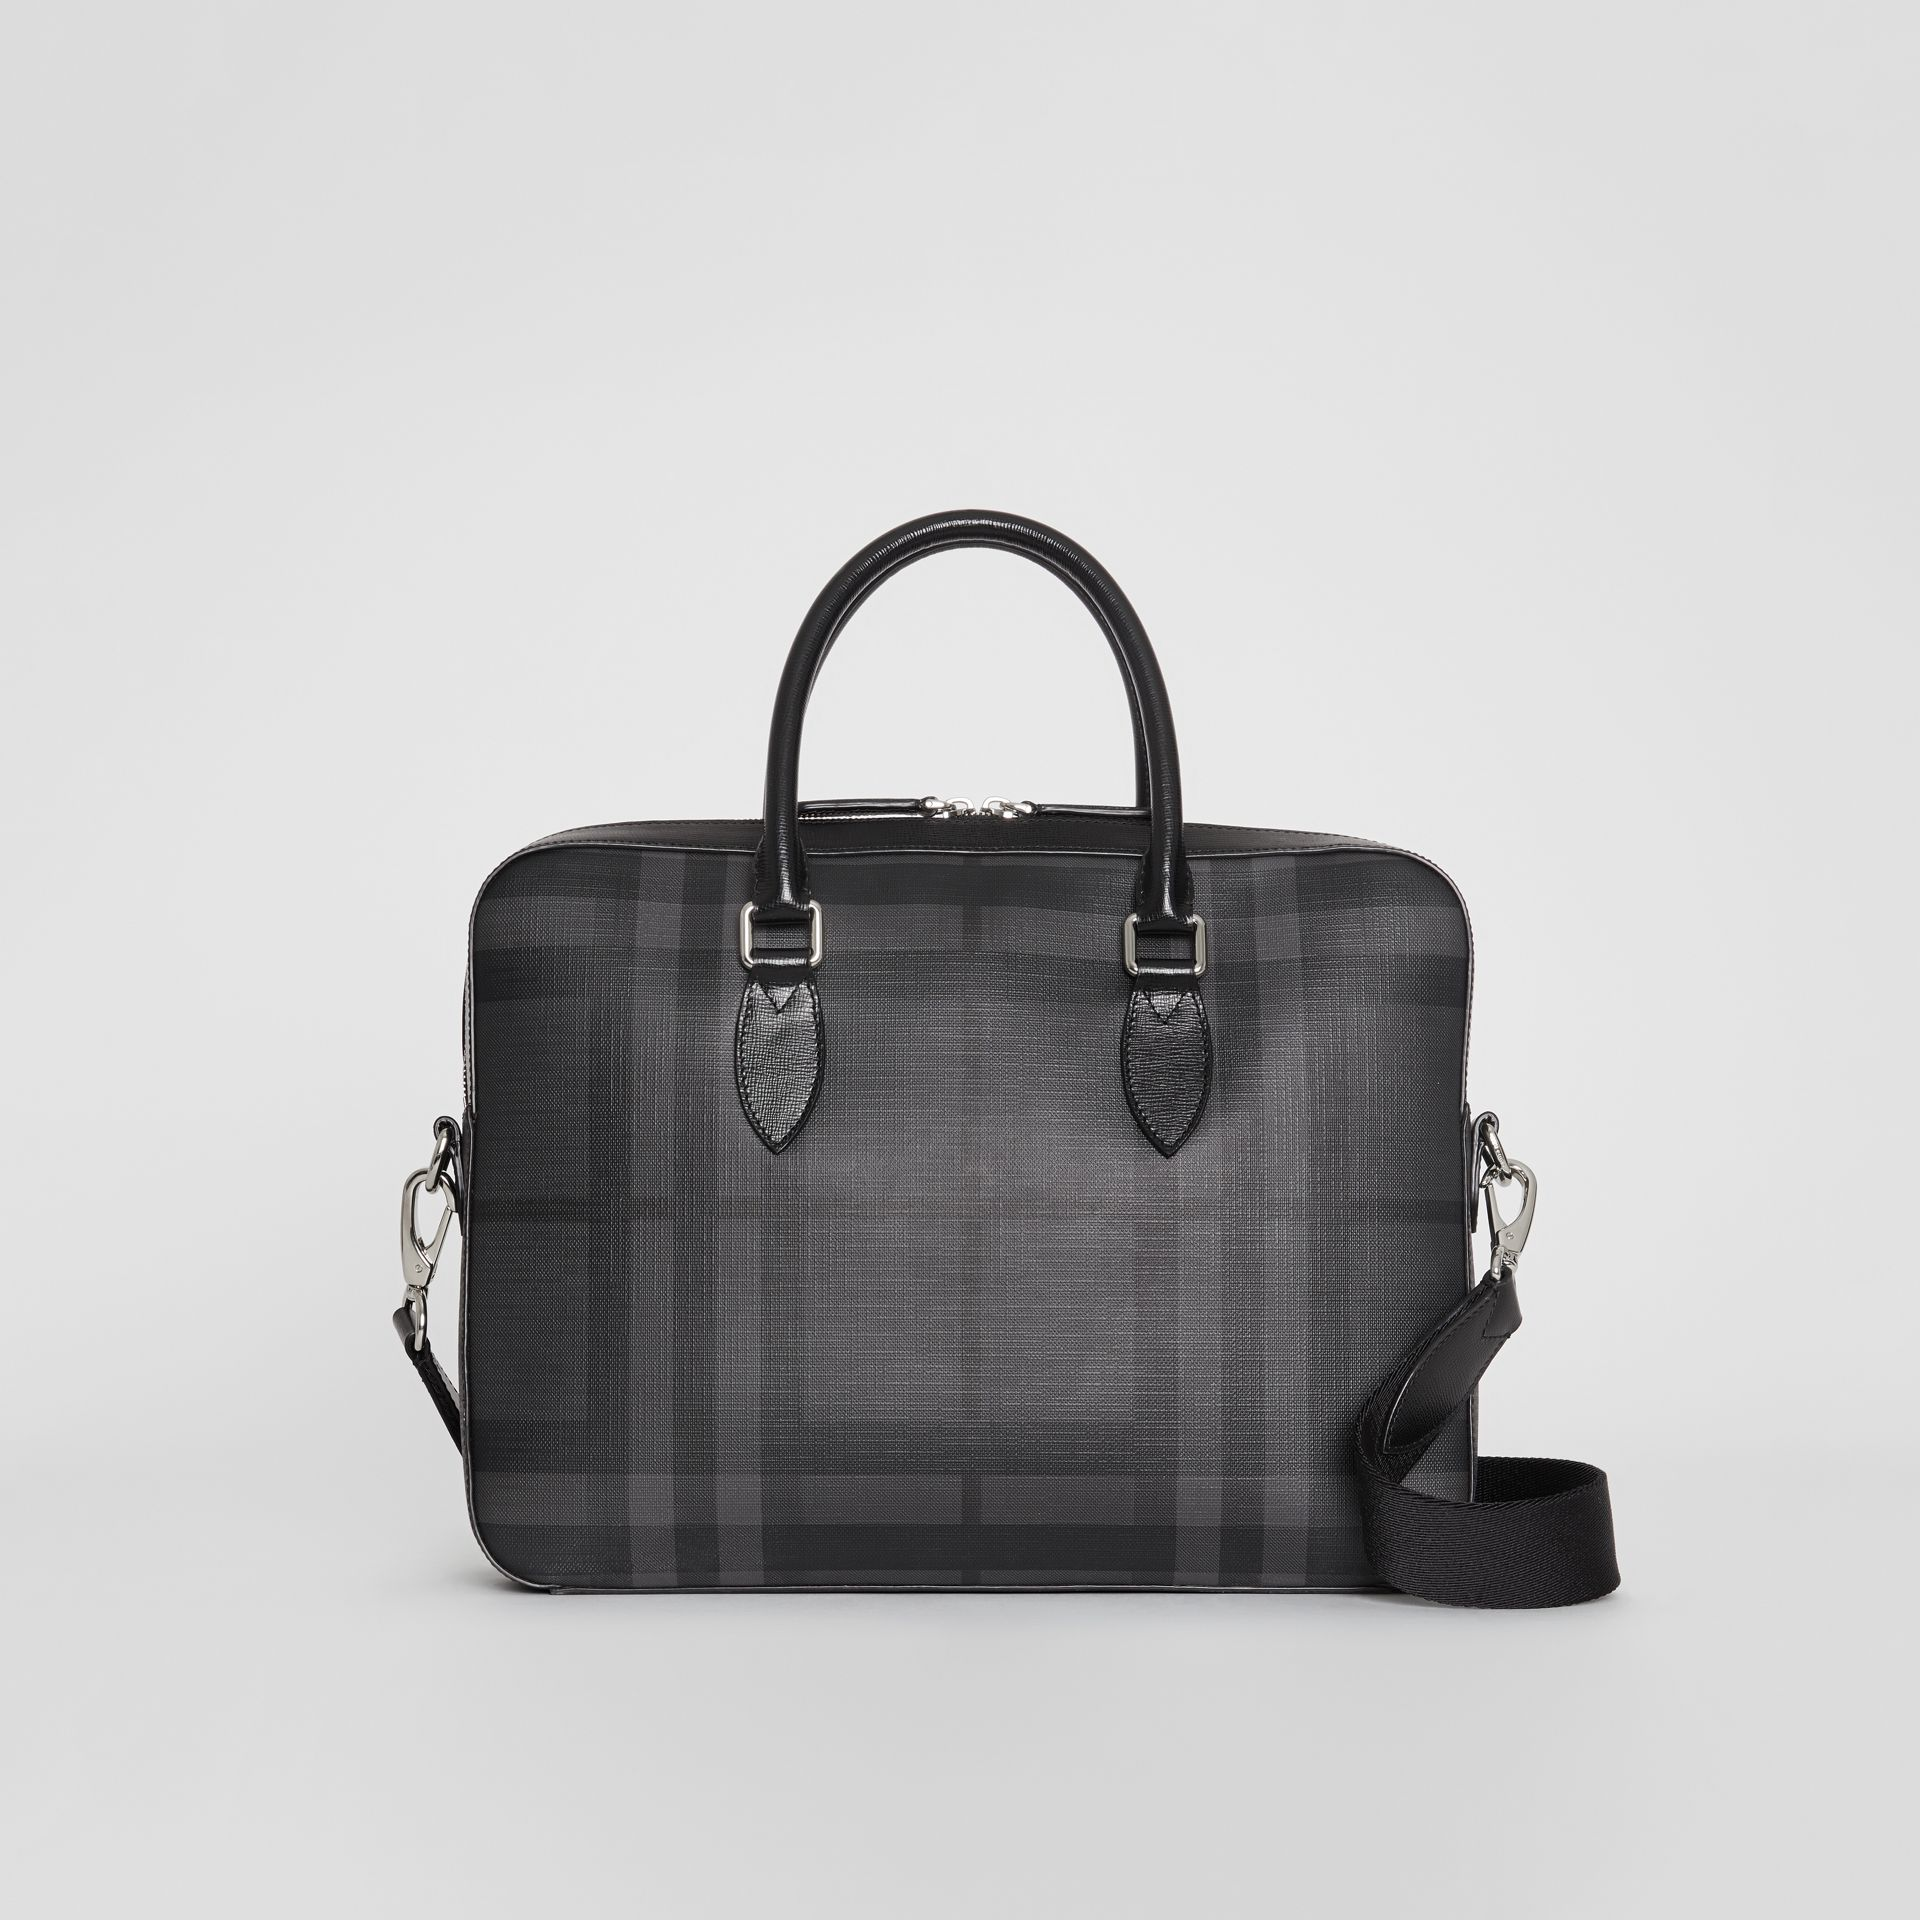 Sac The Barrow fin avec motif London check (Anthracite/noir) - Homme | Burberry - photo de la galerie 0